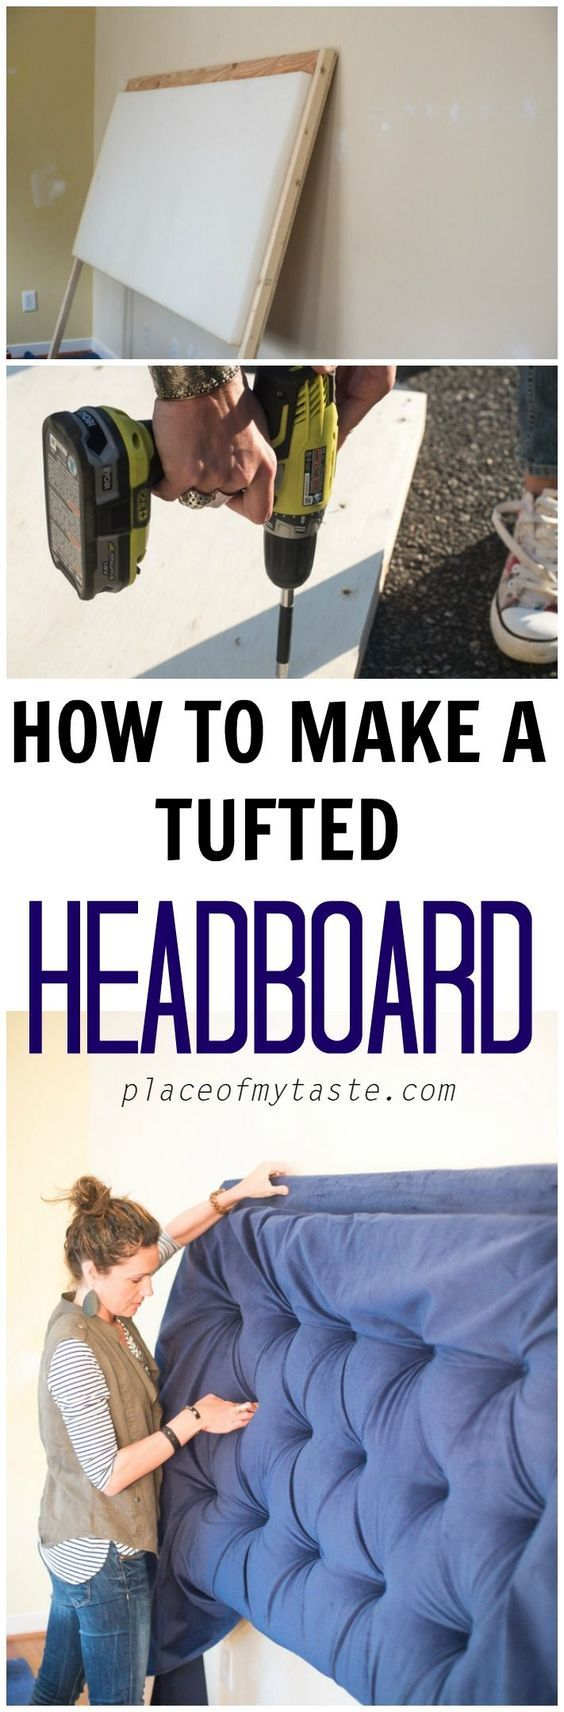 Tufted headboard - how to make it own your own tutorial ...